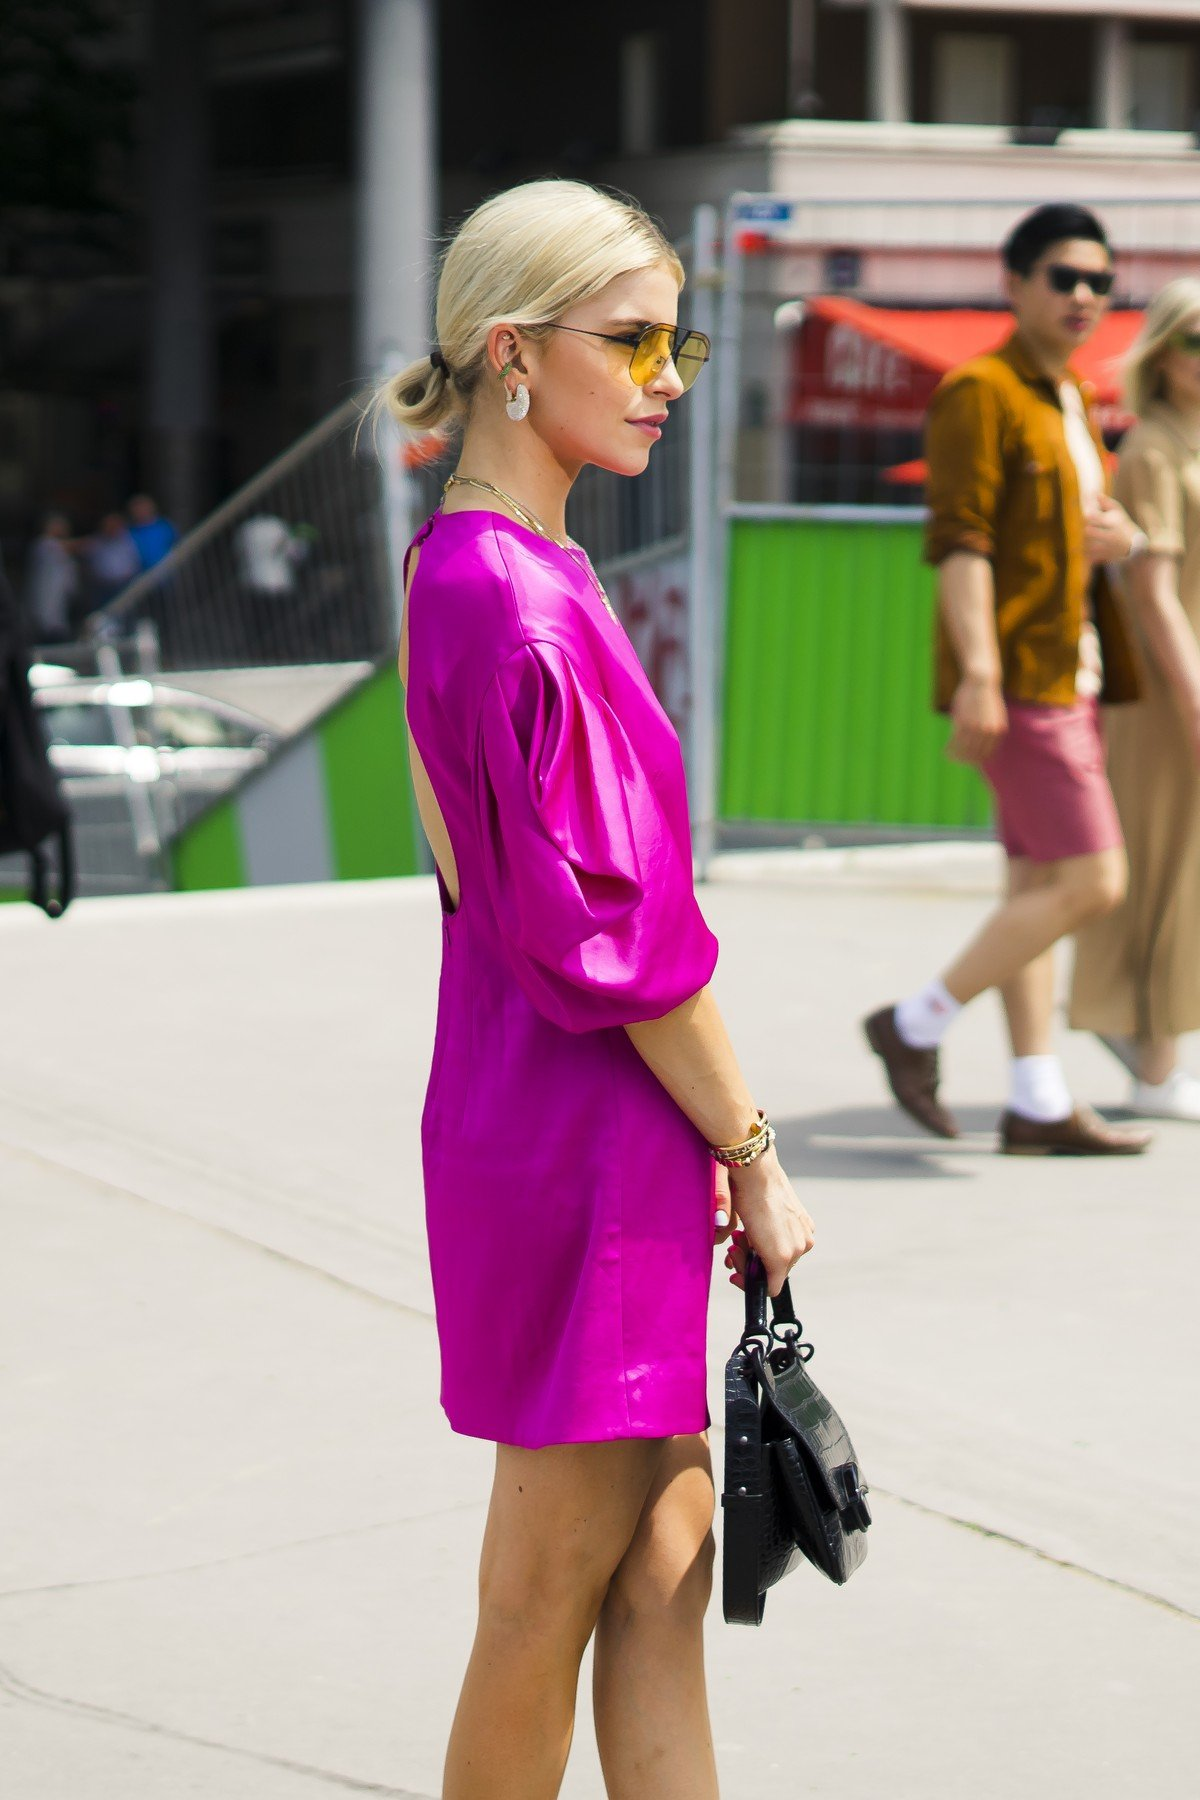 June 23, 2019 - Paris, France - A guest is seen during the Street Style : Paris Fashion Week - Menswear Spring/Summer 2020 : Day 6 At Kenzo fashion show, on June 23, 2019, in Paris, France., Image: 451288918, License: Rights-managed, Restrictions: * France Rights OUT *, Model Release: no, Credit line: Profimedia, Zuma Press